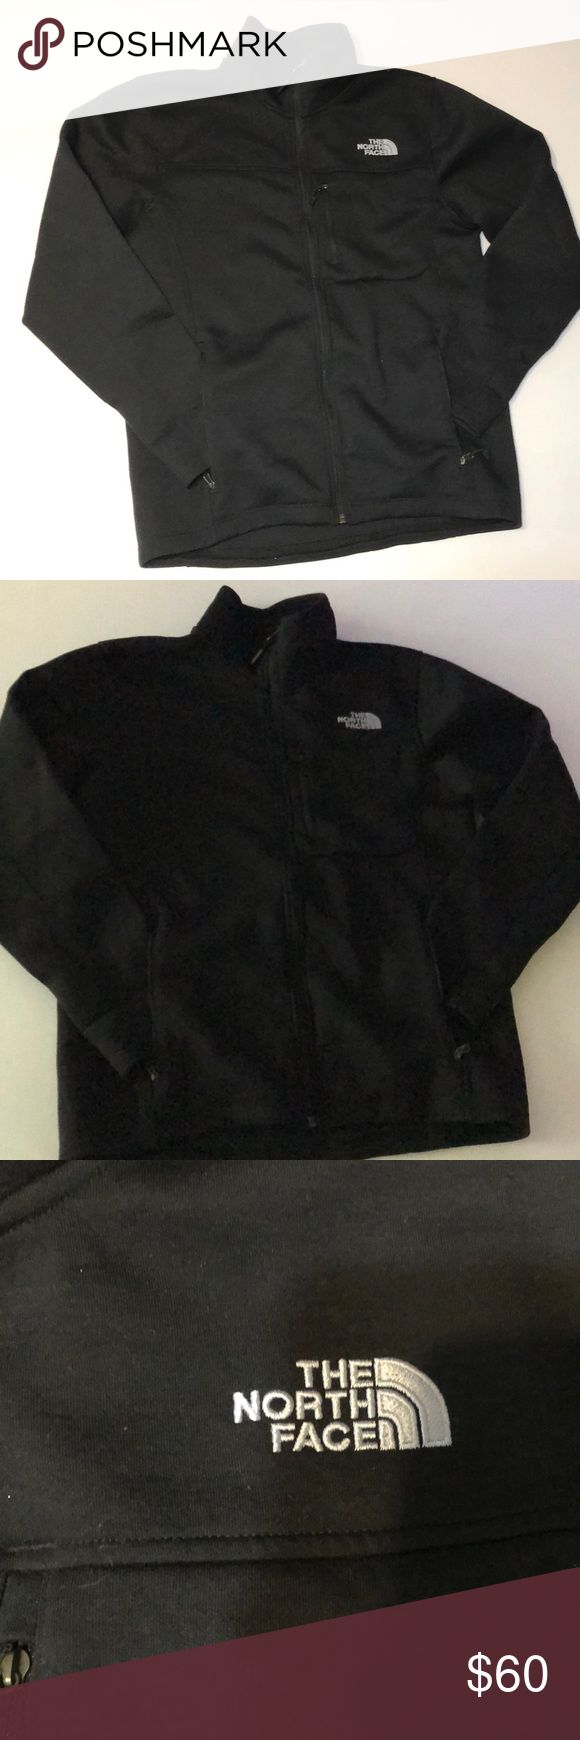 The North Face Mens jacket The North Face men's jacket.  Has only been worn a couple of times.  Authentic No stains or tears.  No trades The North Face Jackets & Coats Windbreakers